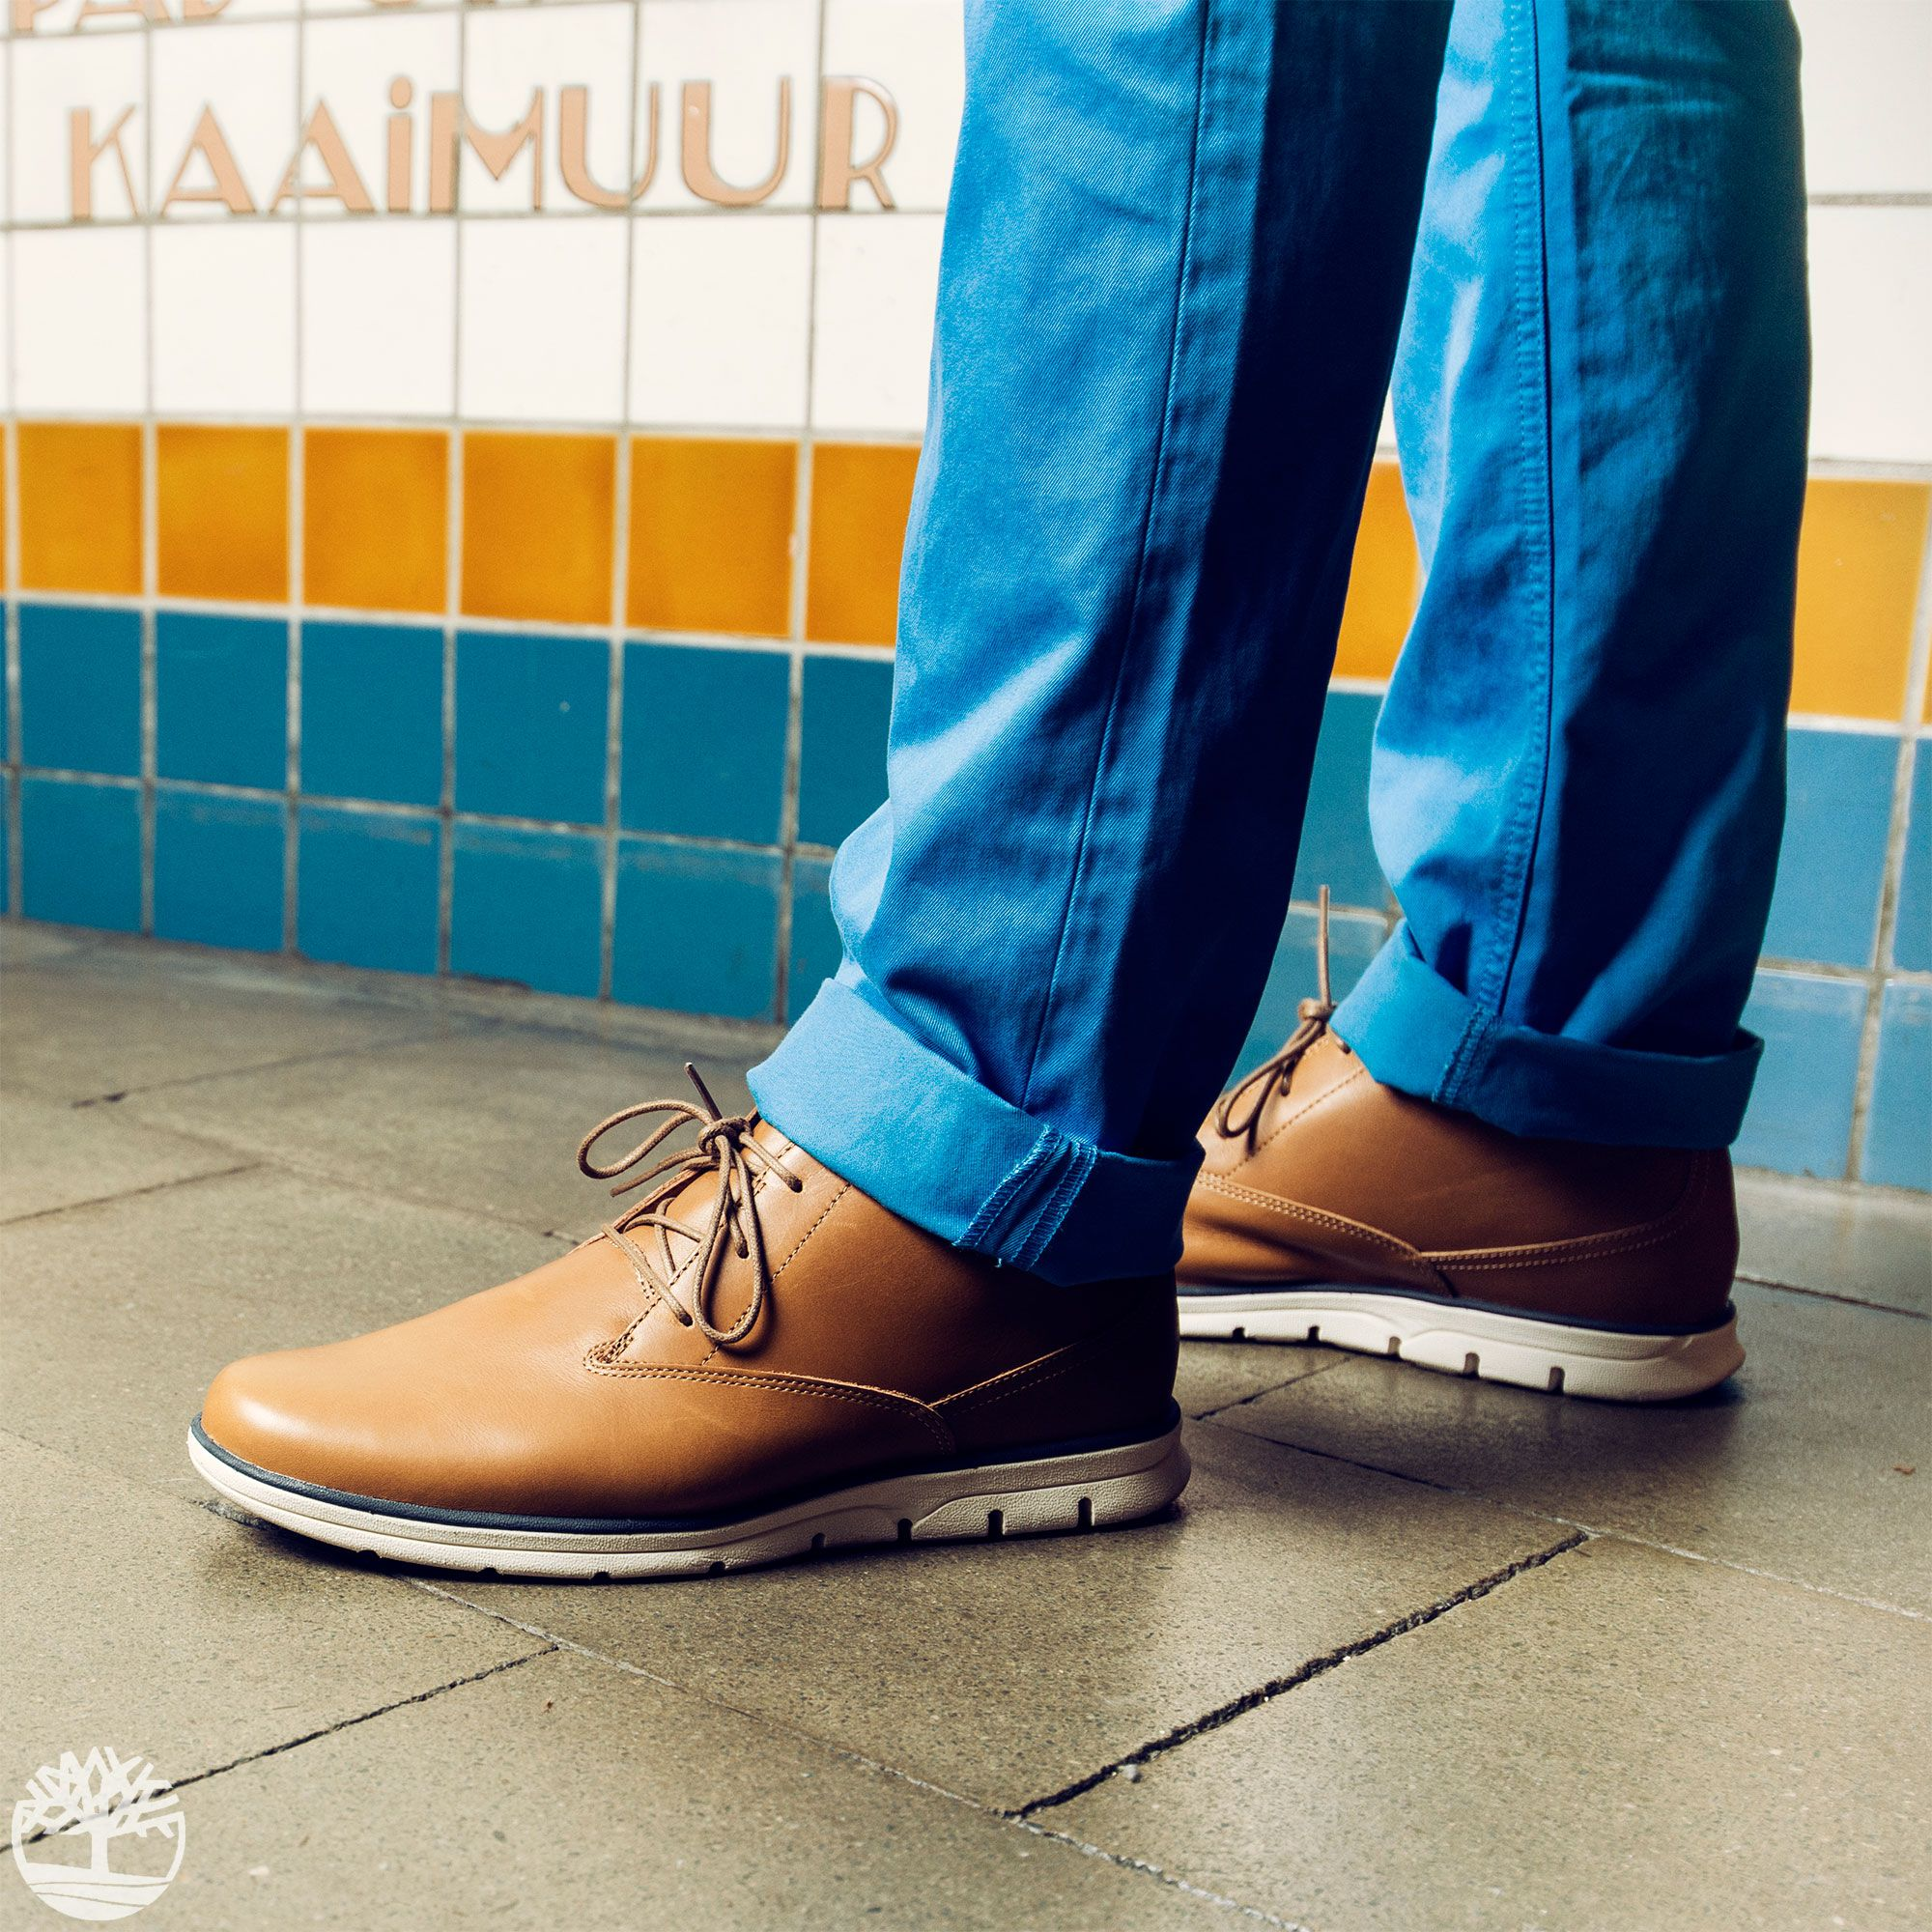 Go for casual! Combine our classy #Bradstreet shoe & playful